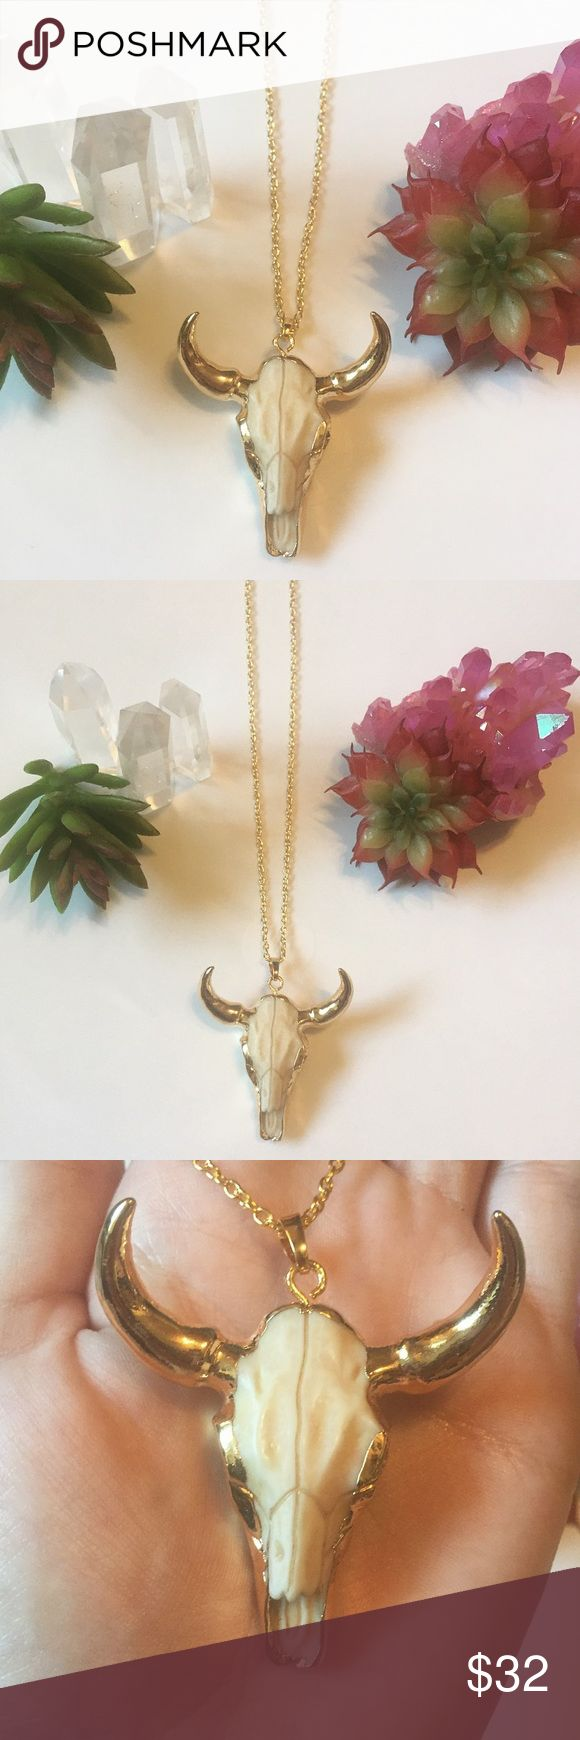 Bison skull gold necklace Bison skull gold necklace made from white resin and 24k gold electroform. Such an awesome piece with so much detail in the skull. Comes on an 18 inch gold chain. Note: the chain is not real gold plated so it needs to be handled carefully and kept away from water. Chain is a lead and nickel free metal alloy. Pendant can easily be removed from the existing chain and put on your own chains if longer lengths are desired. 2 available! Boho gypsy bohemian cow horn bull…